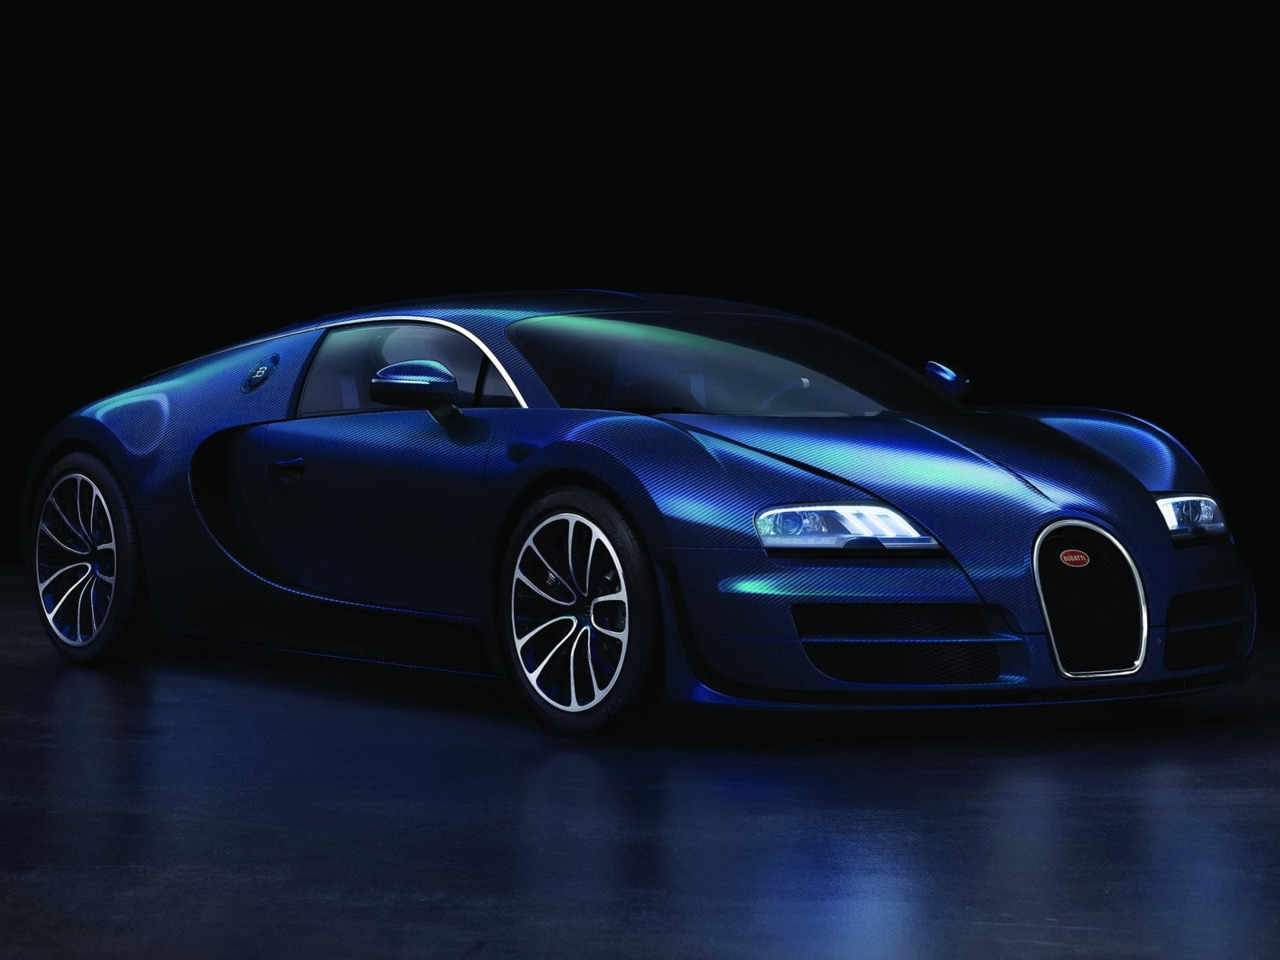 edgina:  2010 Bugatti Veryon 16.4 Super Sports